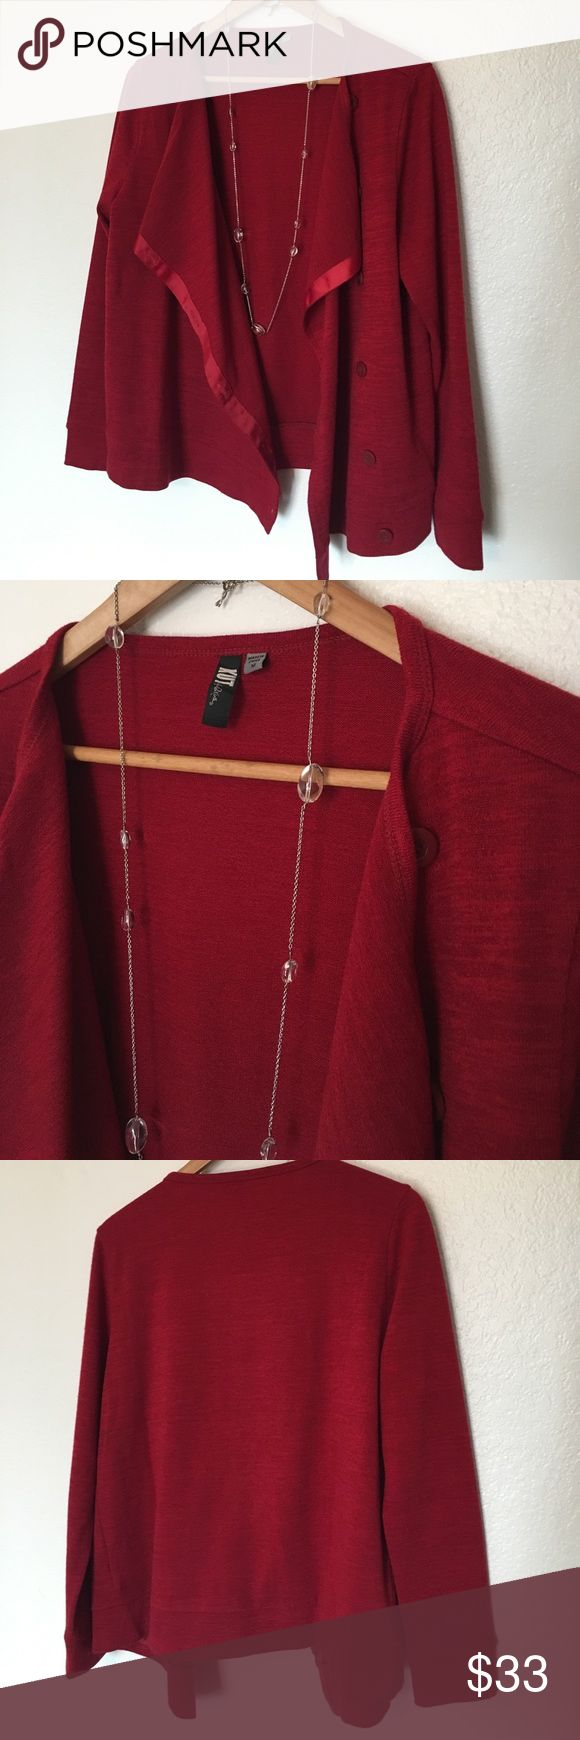 🌼Kut from the Kloth Red Cardi🌼 This Cardi is a deep red color. Has a Ribbon detail in front and buttons to close if desired. It's a bit of a drapey style. Only worn once. Size M but would also work for a L in my opinion. Save on ✈️SHIPPING✈️and 🎁BUNDLE! I even give a discount on 3 or more regularly priced item bundles. I always accept reasonable offers with the offer button! 🚫❌Lowball offers please! Kut from the Kloth Sweaters Cardigans